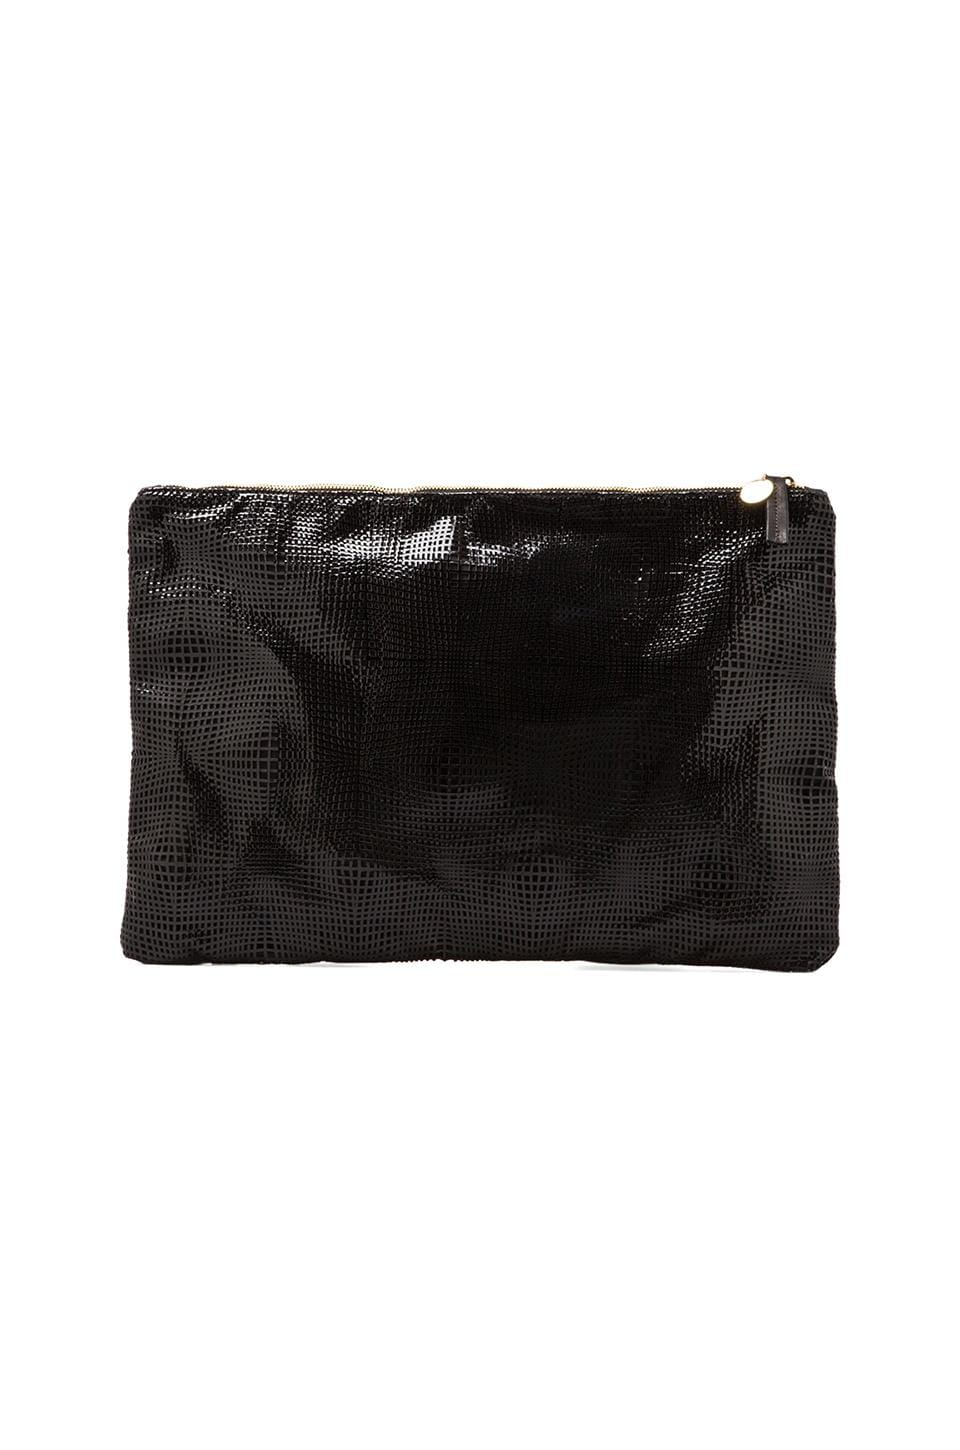 Clare V. Laptop/Oversized Clutch in Black Laser Patent